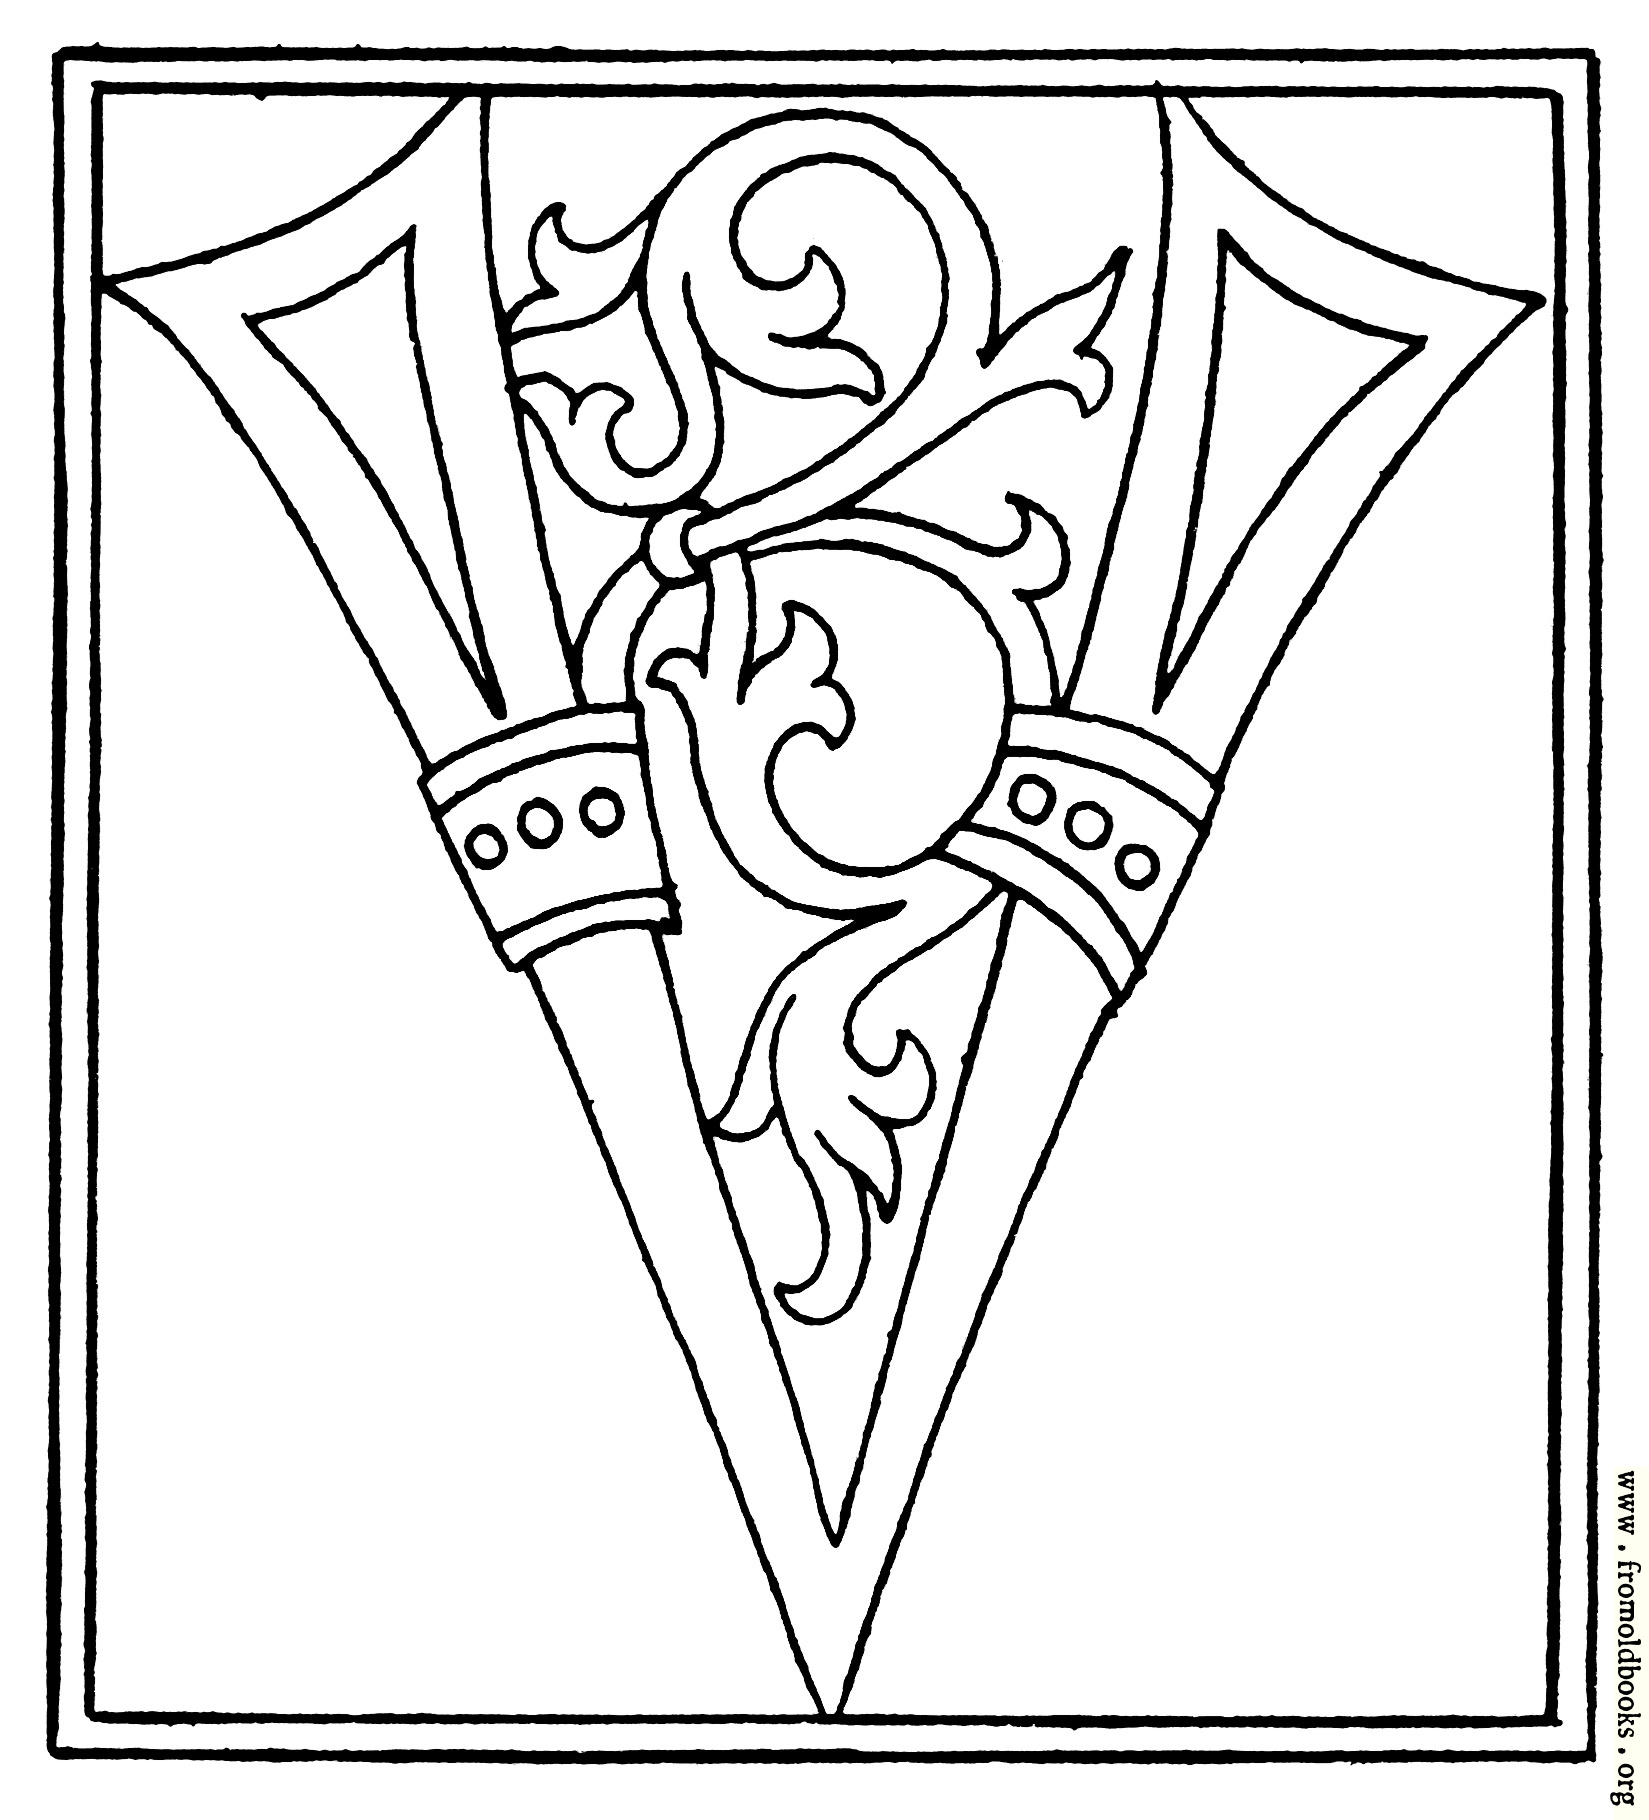 Clipart Initial Letter V From Late 15th Century Printed Book